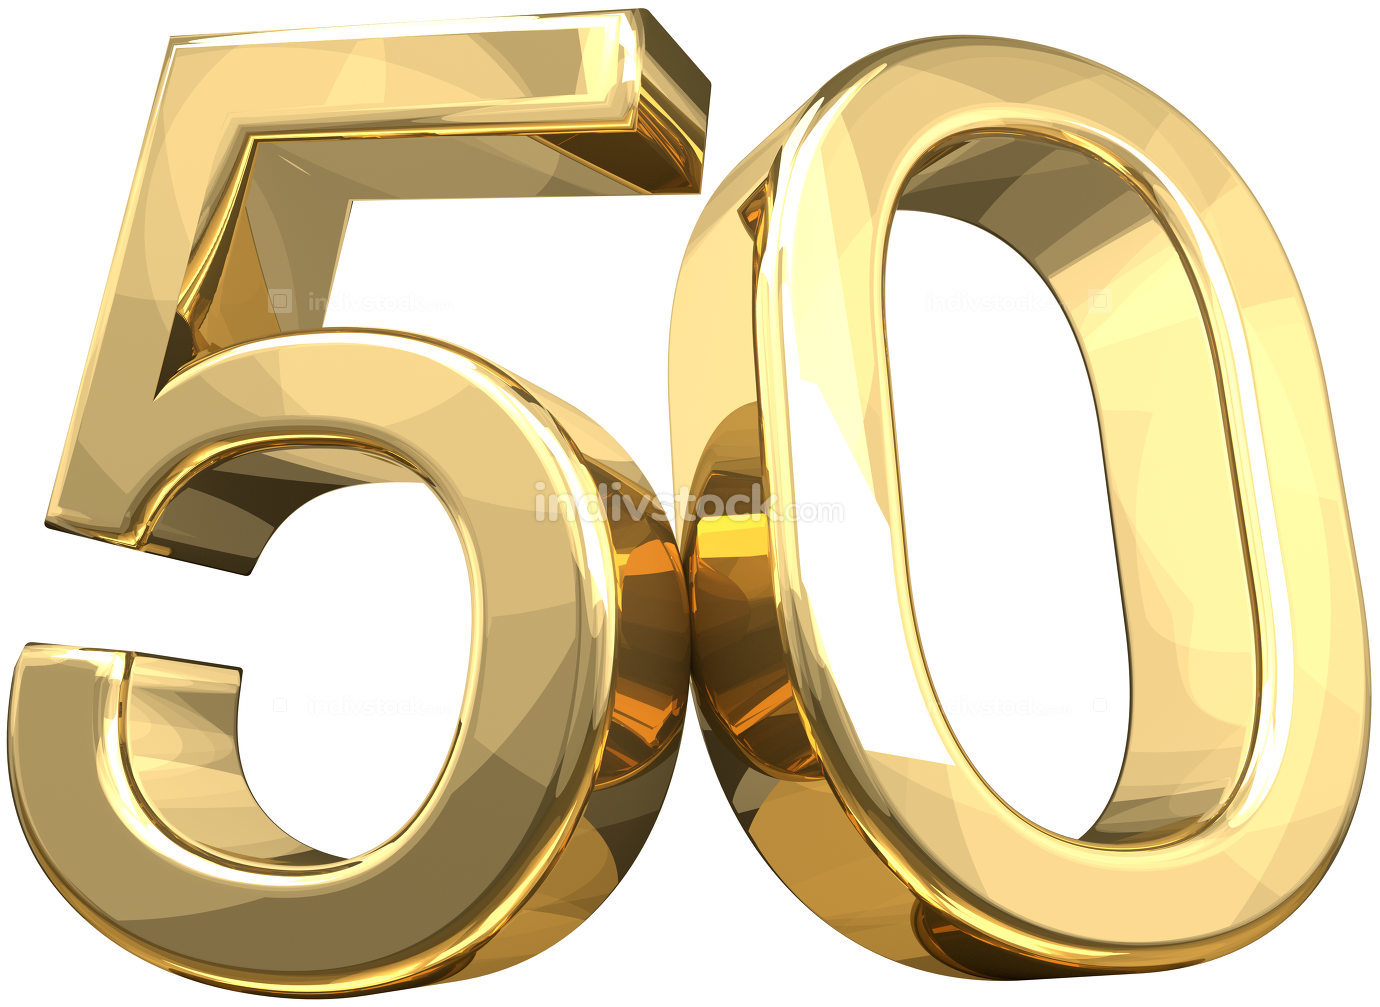 50 golden number isolated 3d rendering